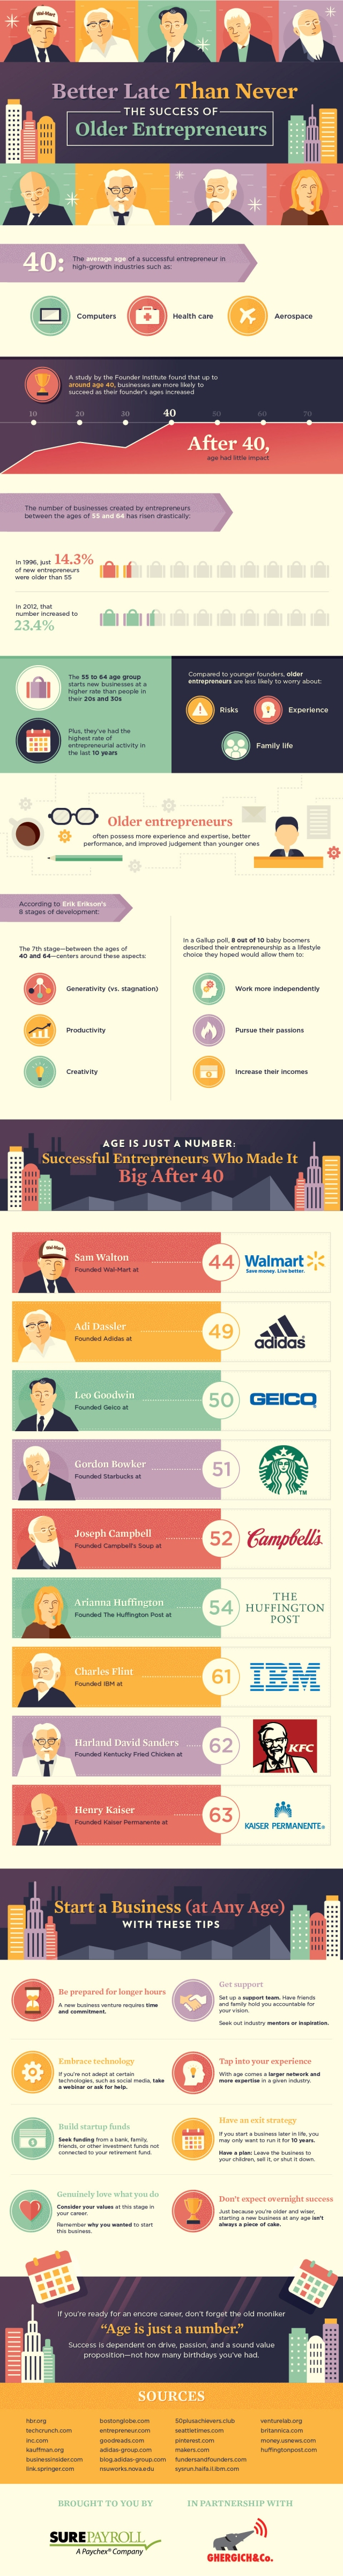 Age is Just a Number! Successful Entrepreneurs Who Made it Big After 40